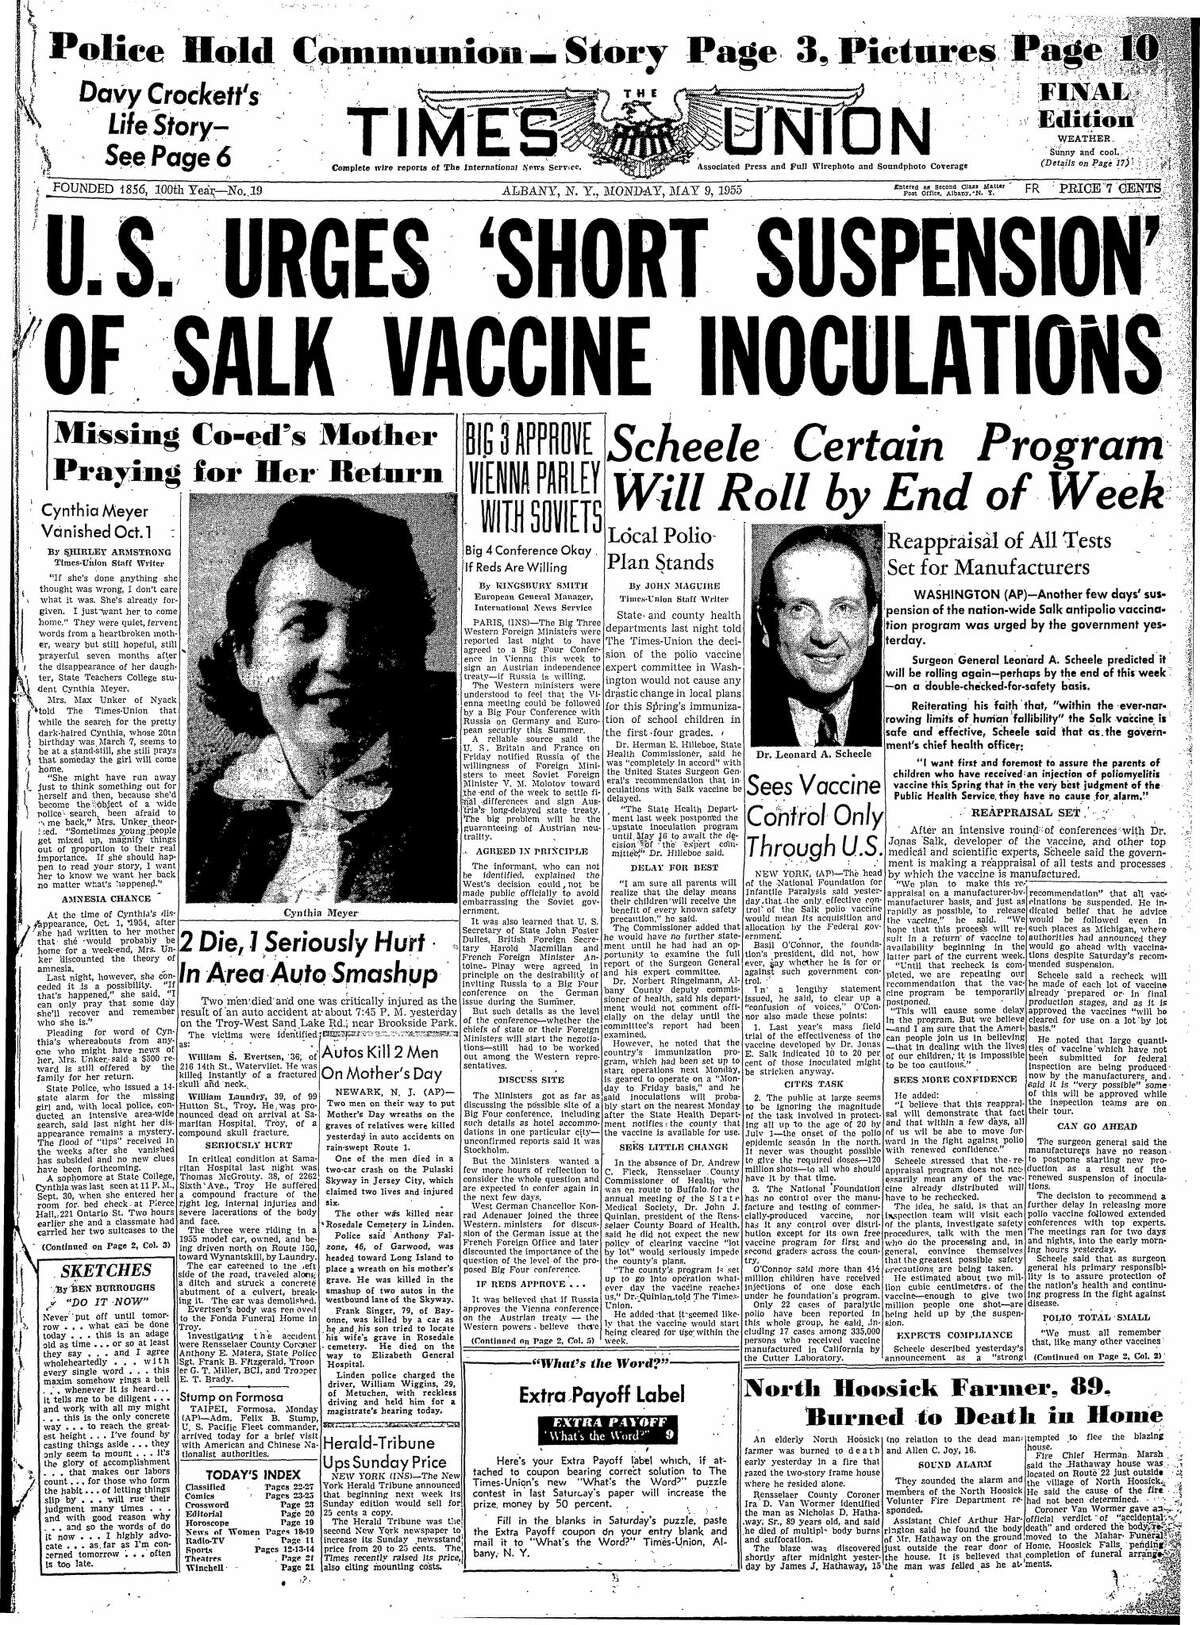 May 5, 1955, Times Union.